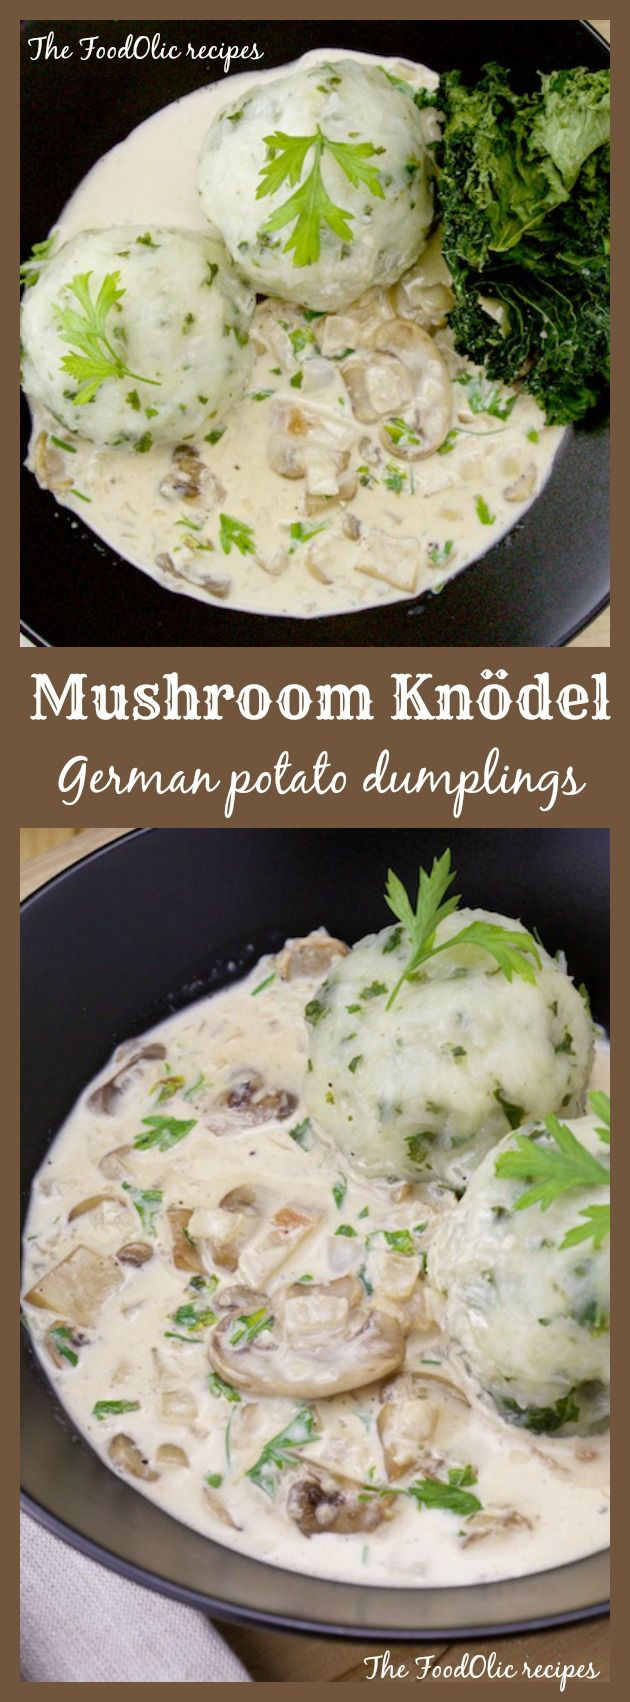 German potatoe dumplings with mushroom sauce. Mushroom Knödel recipe! #mushroom #german #knodel #dumpling